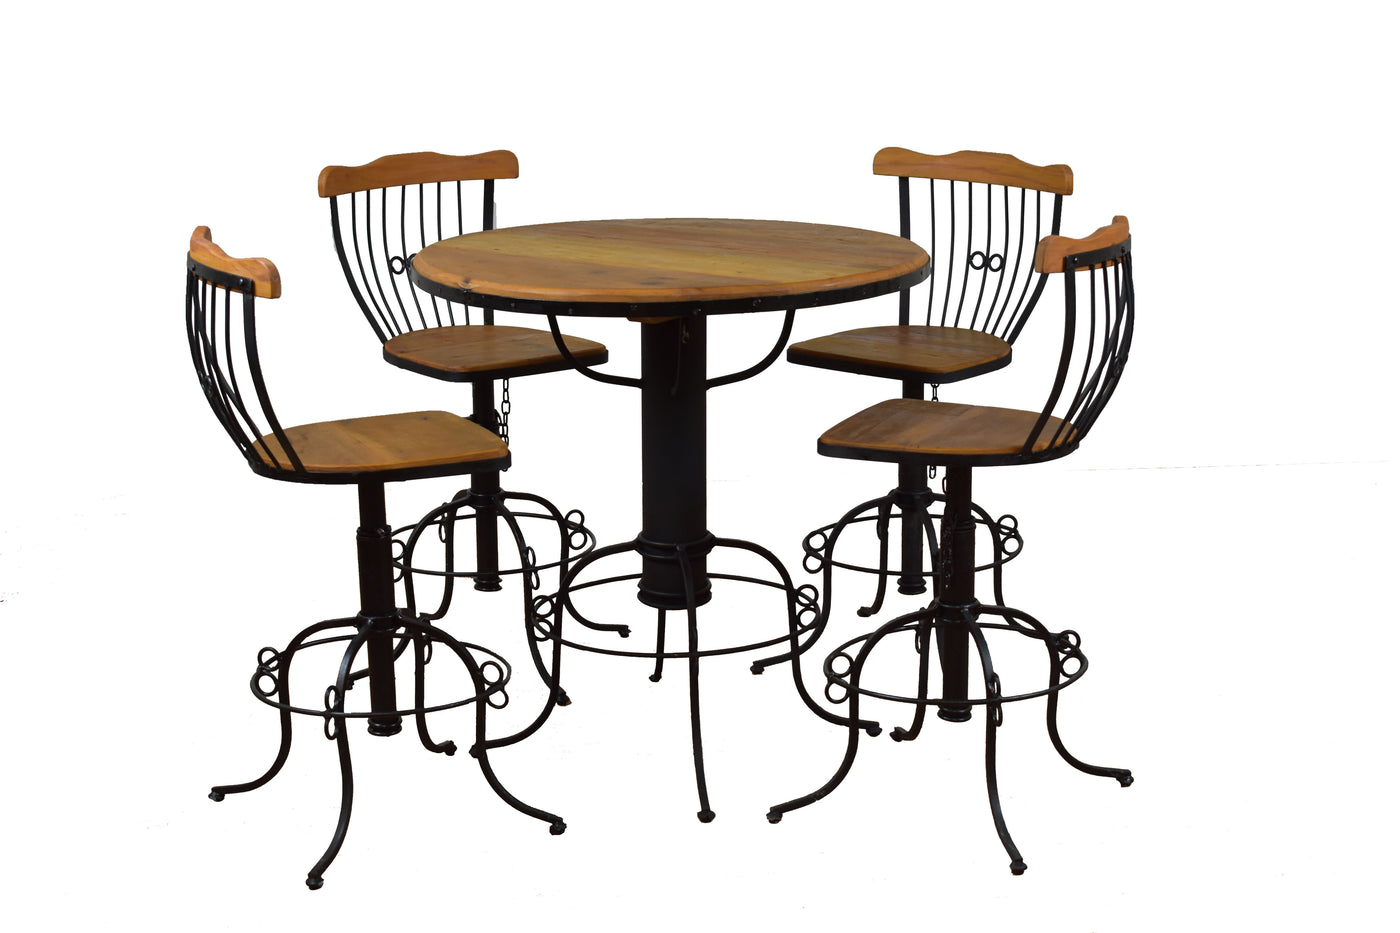 Bistro table dining set industrial dining set wrought iron peroba peroba · Reclaimed Wood ...  sc 1 st  Save The Planet Furniture & Reclaimed Wood Bistro Set \u2013 Reclaimed wood furniture-best price ...